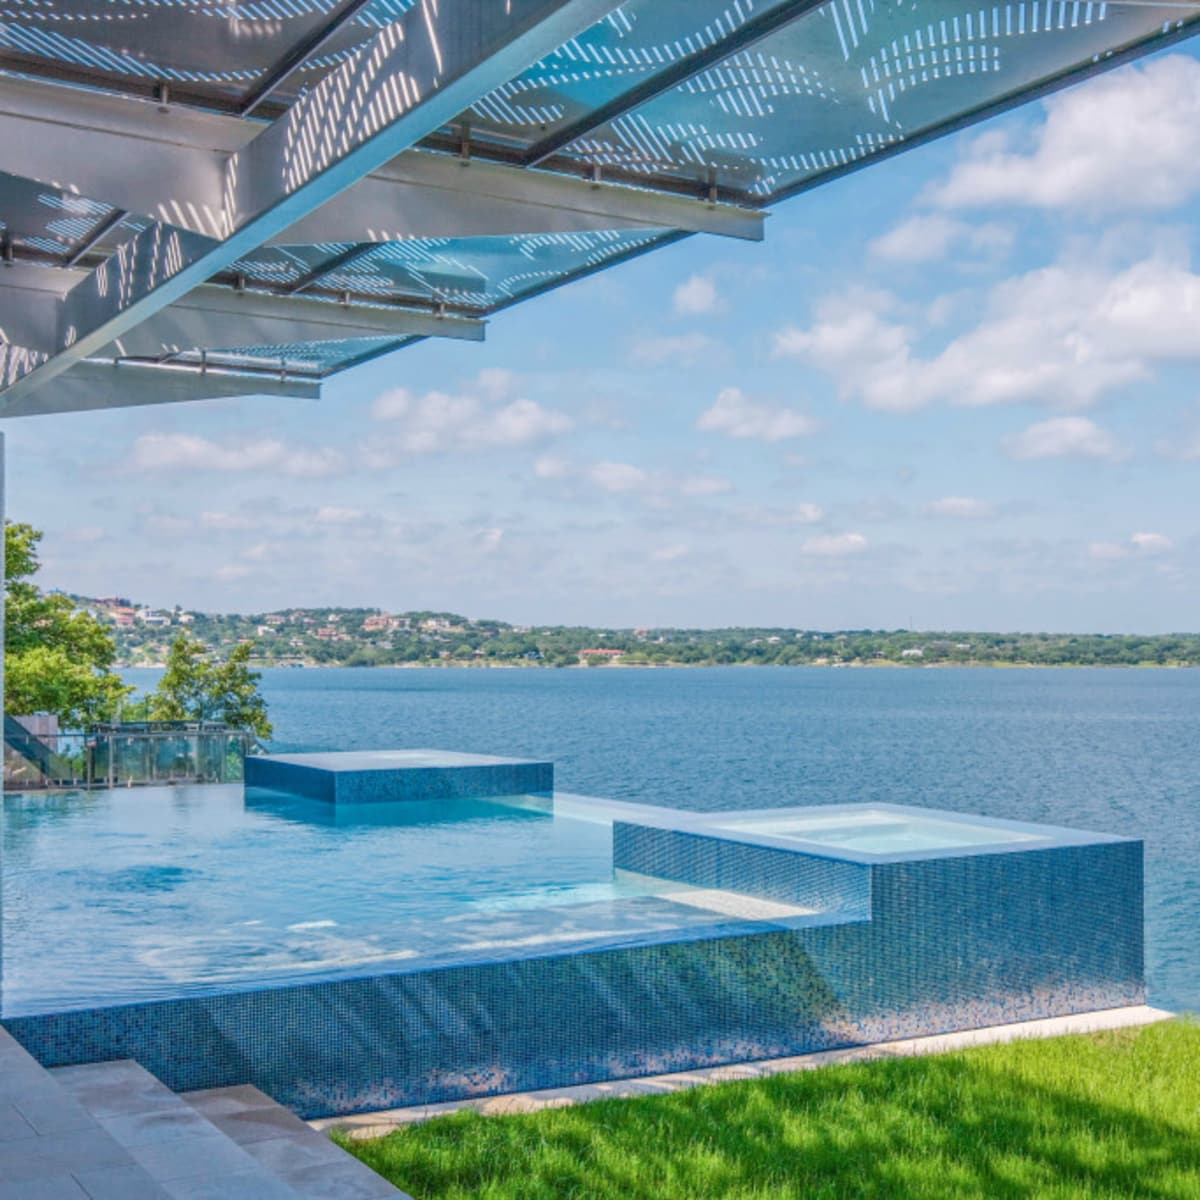 Austin house home Acqua Villa Winn Wittman Lake Travis 14515 Ridgetop Terrace 78732 exterior back side